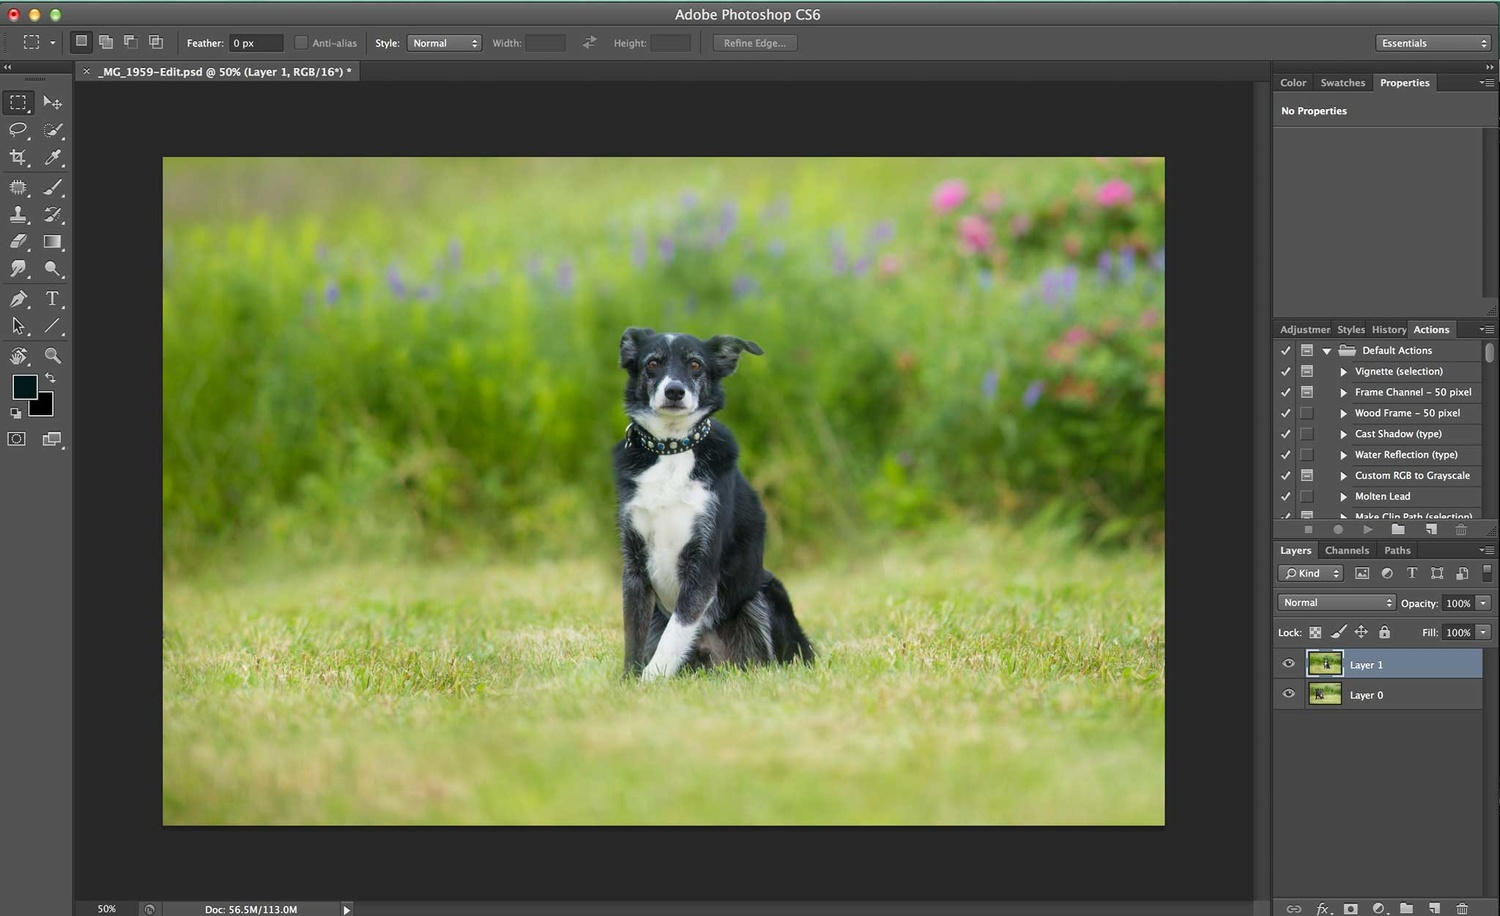 Compositing a dog group photo - Step 1